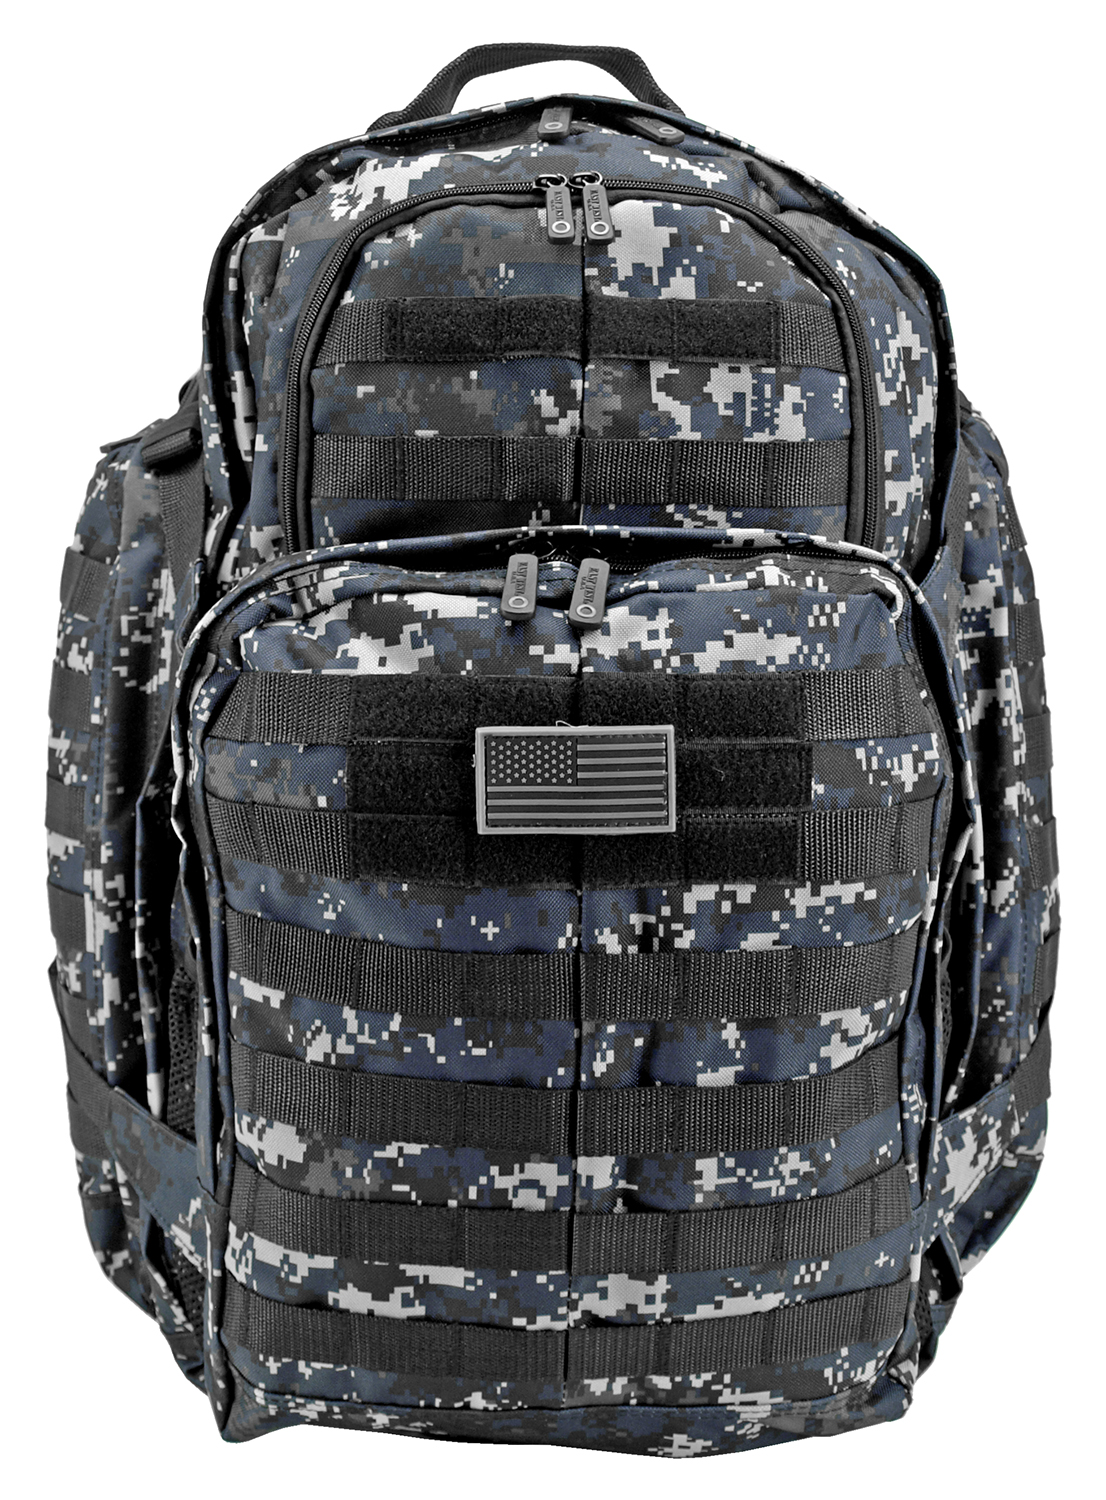 Expandable '73 Backpack - Blue Digital Camo